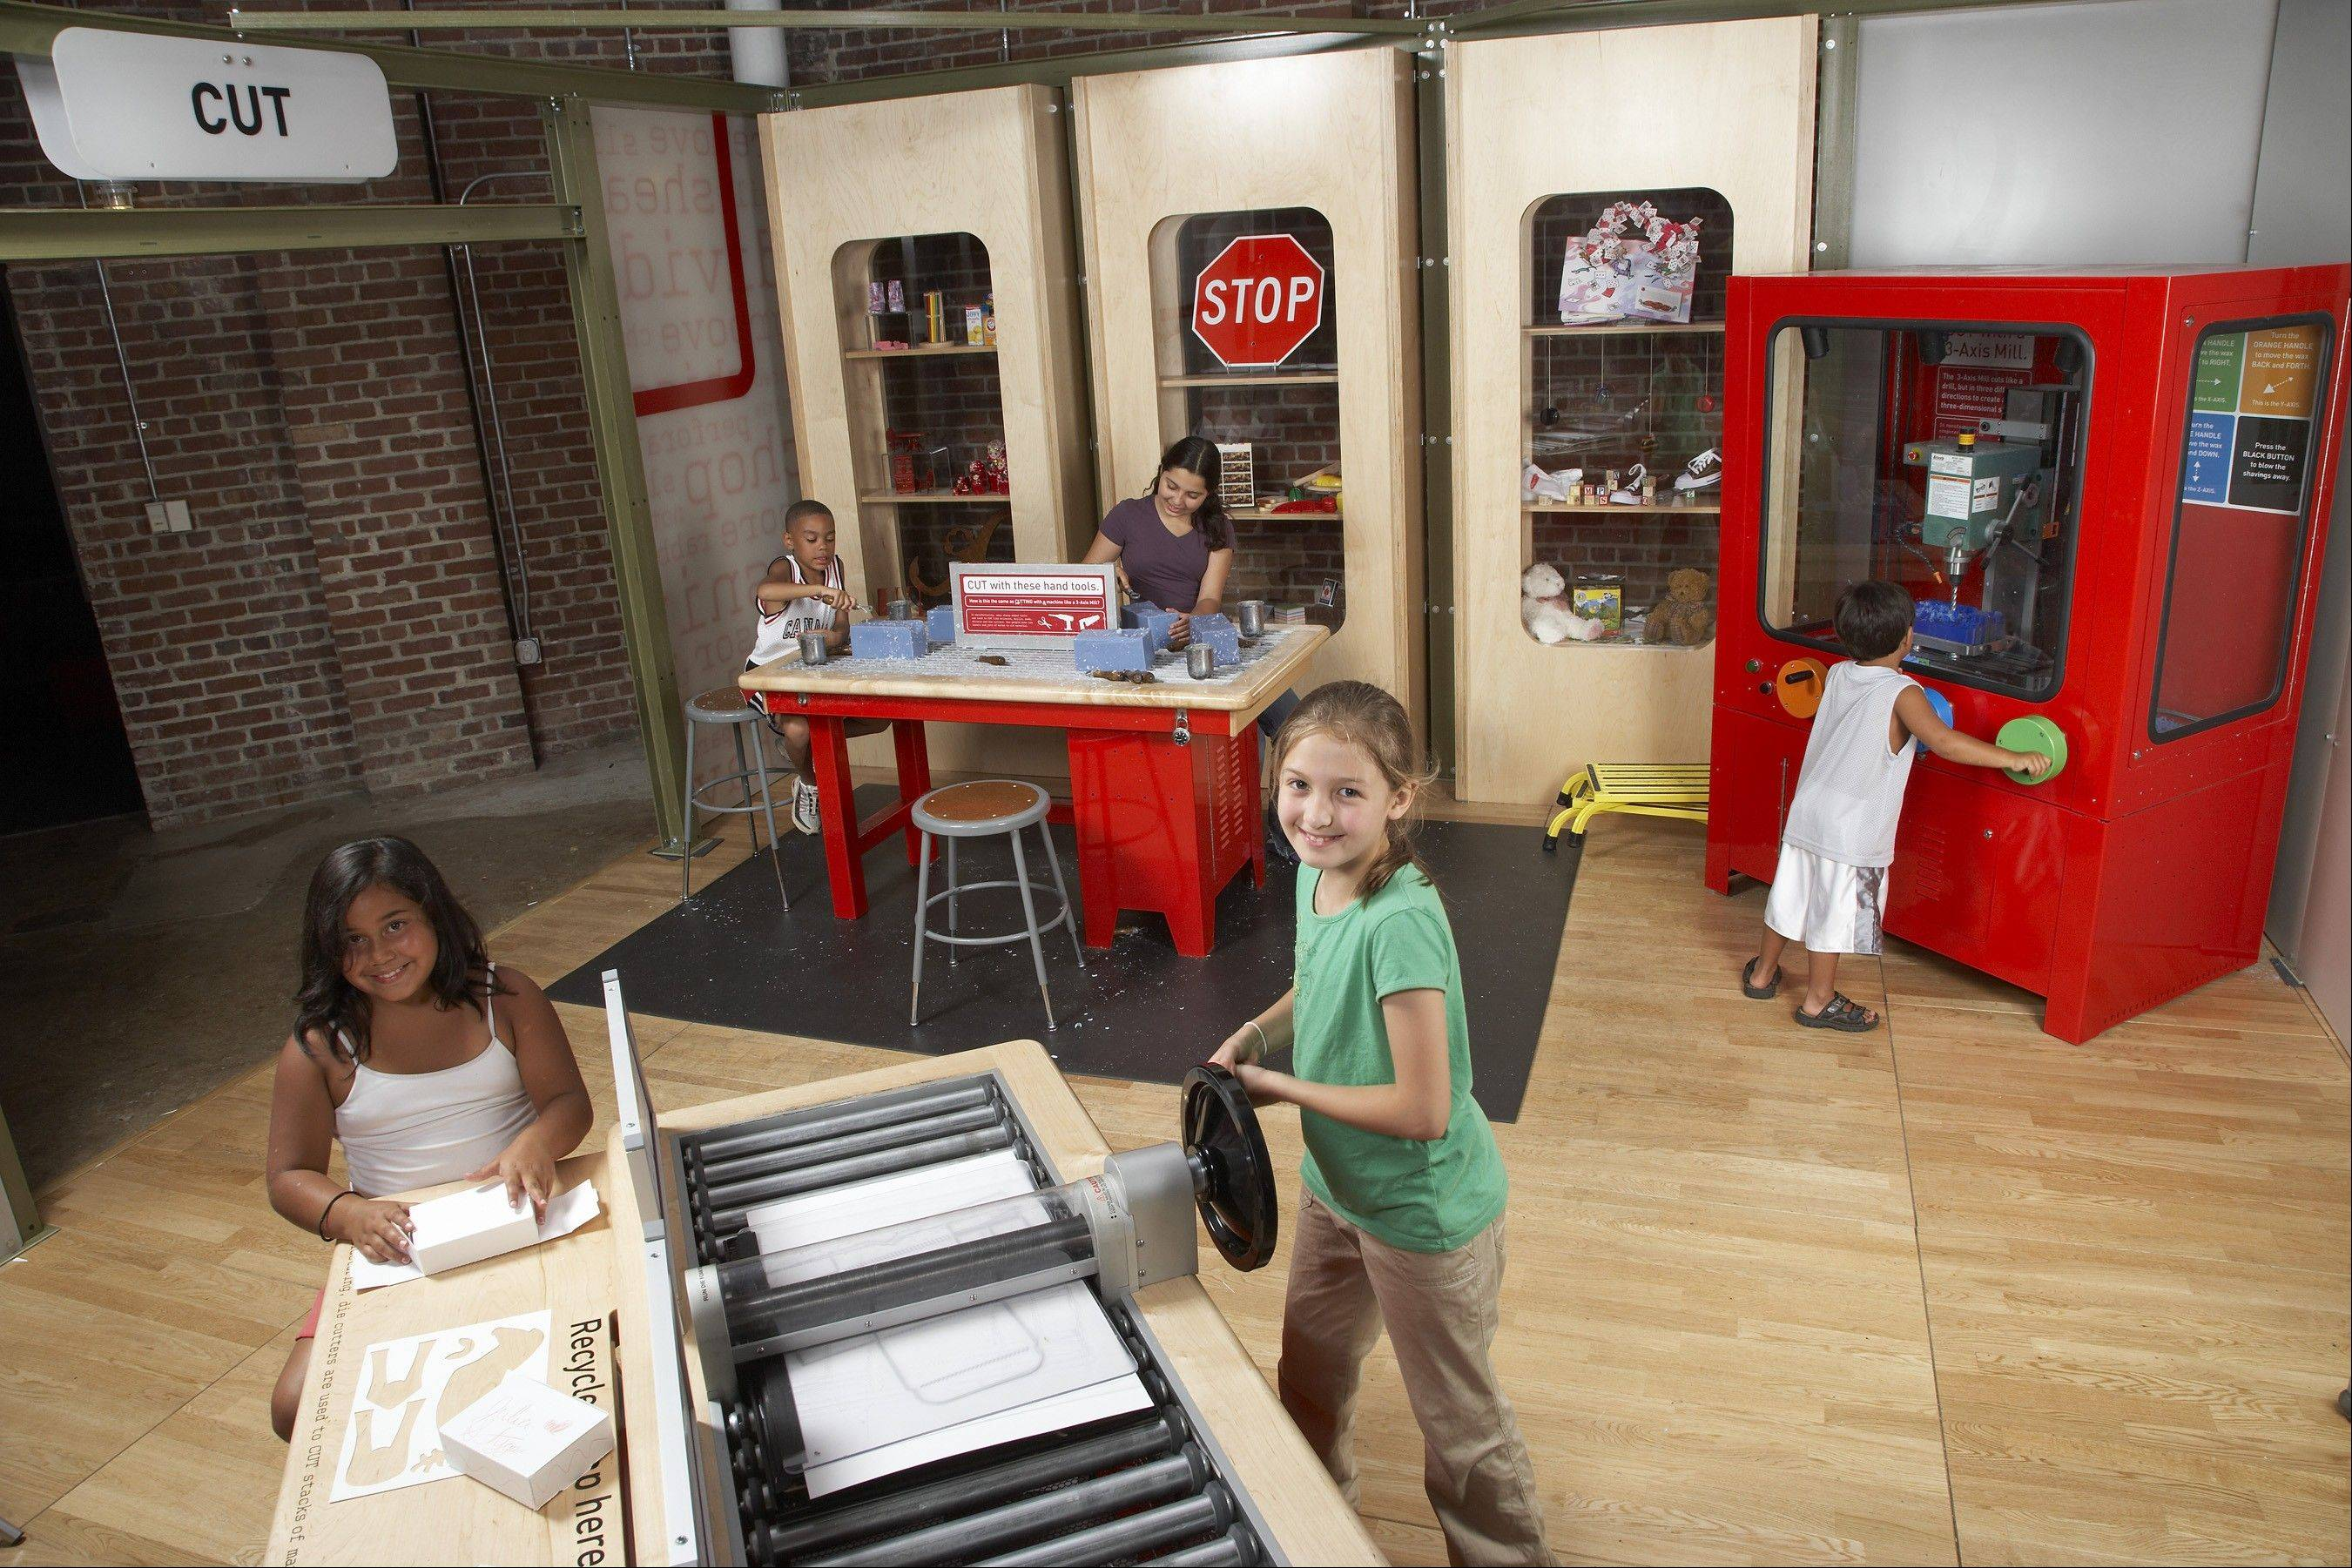 Students learn about cutting tools and materials used in the manufacturing process in the How People Make Things exhibit at the DuPage Children's Museum.